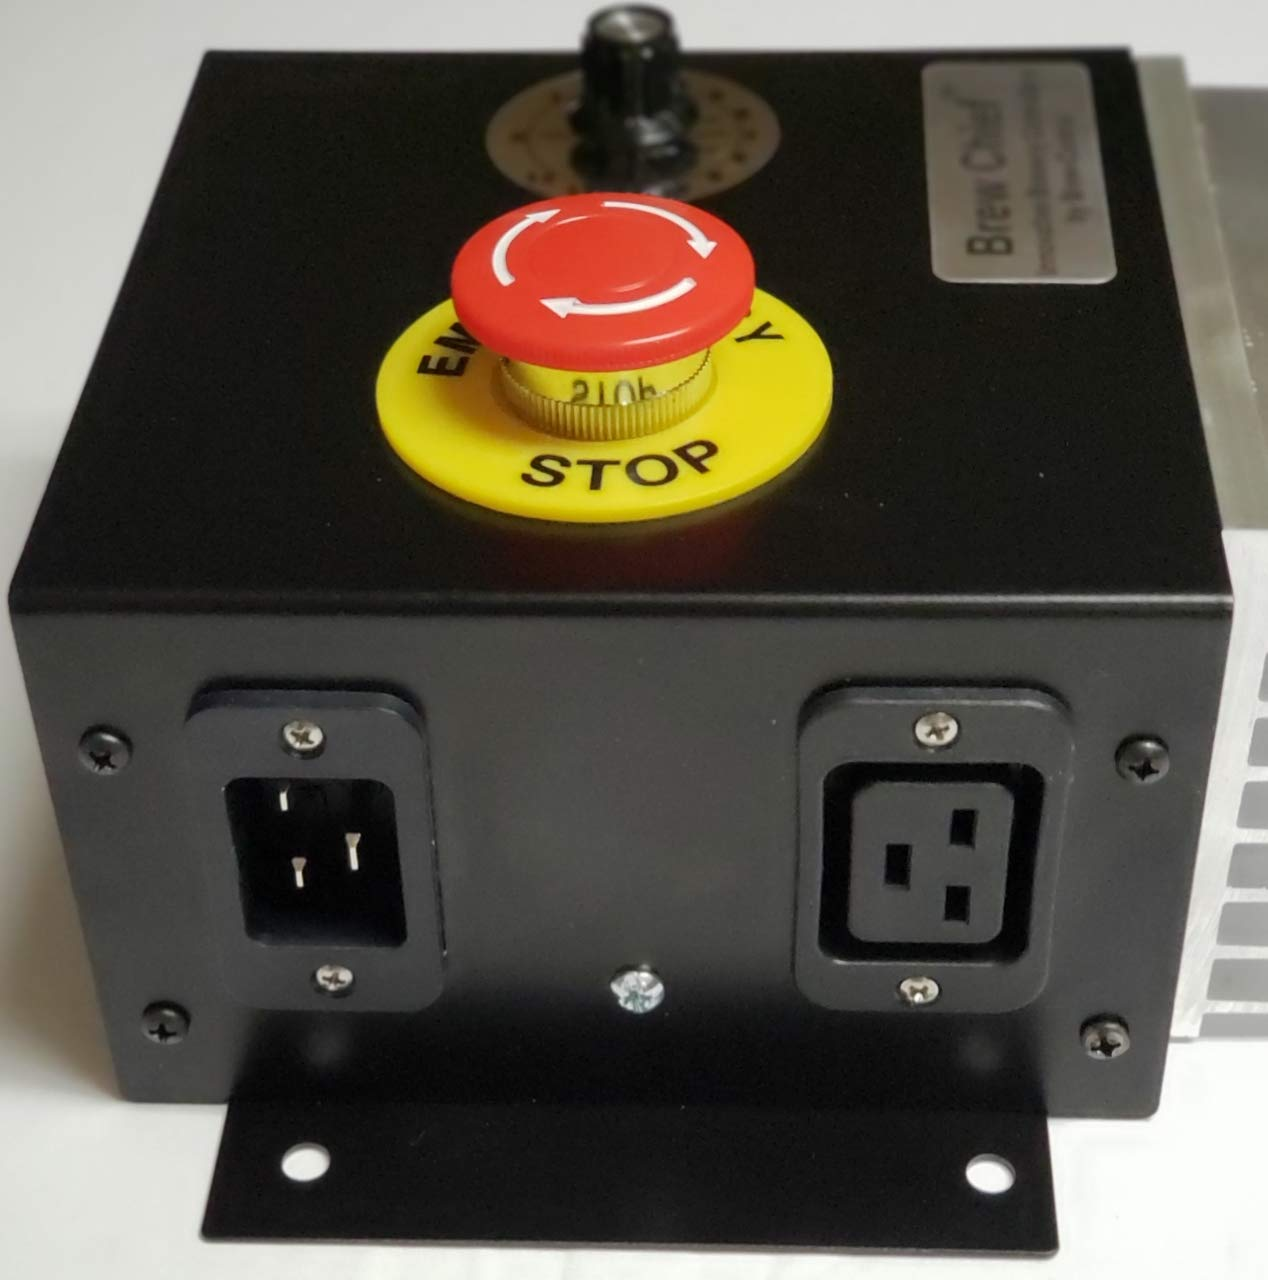 International 220/230/240v Electric Brew Pot/Electric Still Boil Controller by BREW-CONTROL (Image #3)